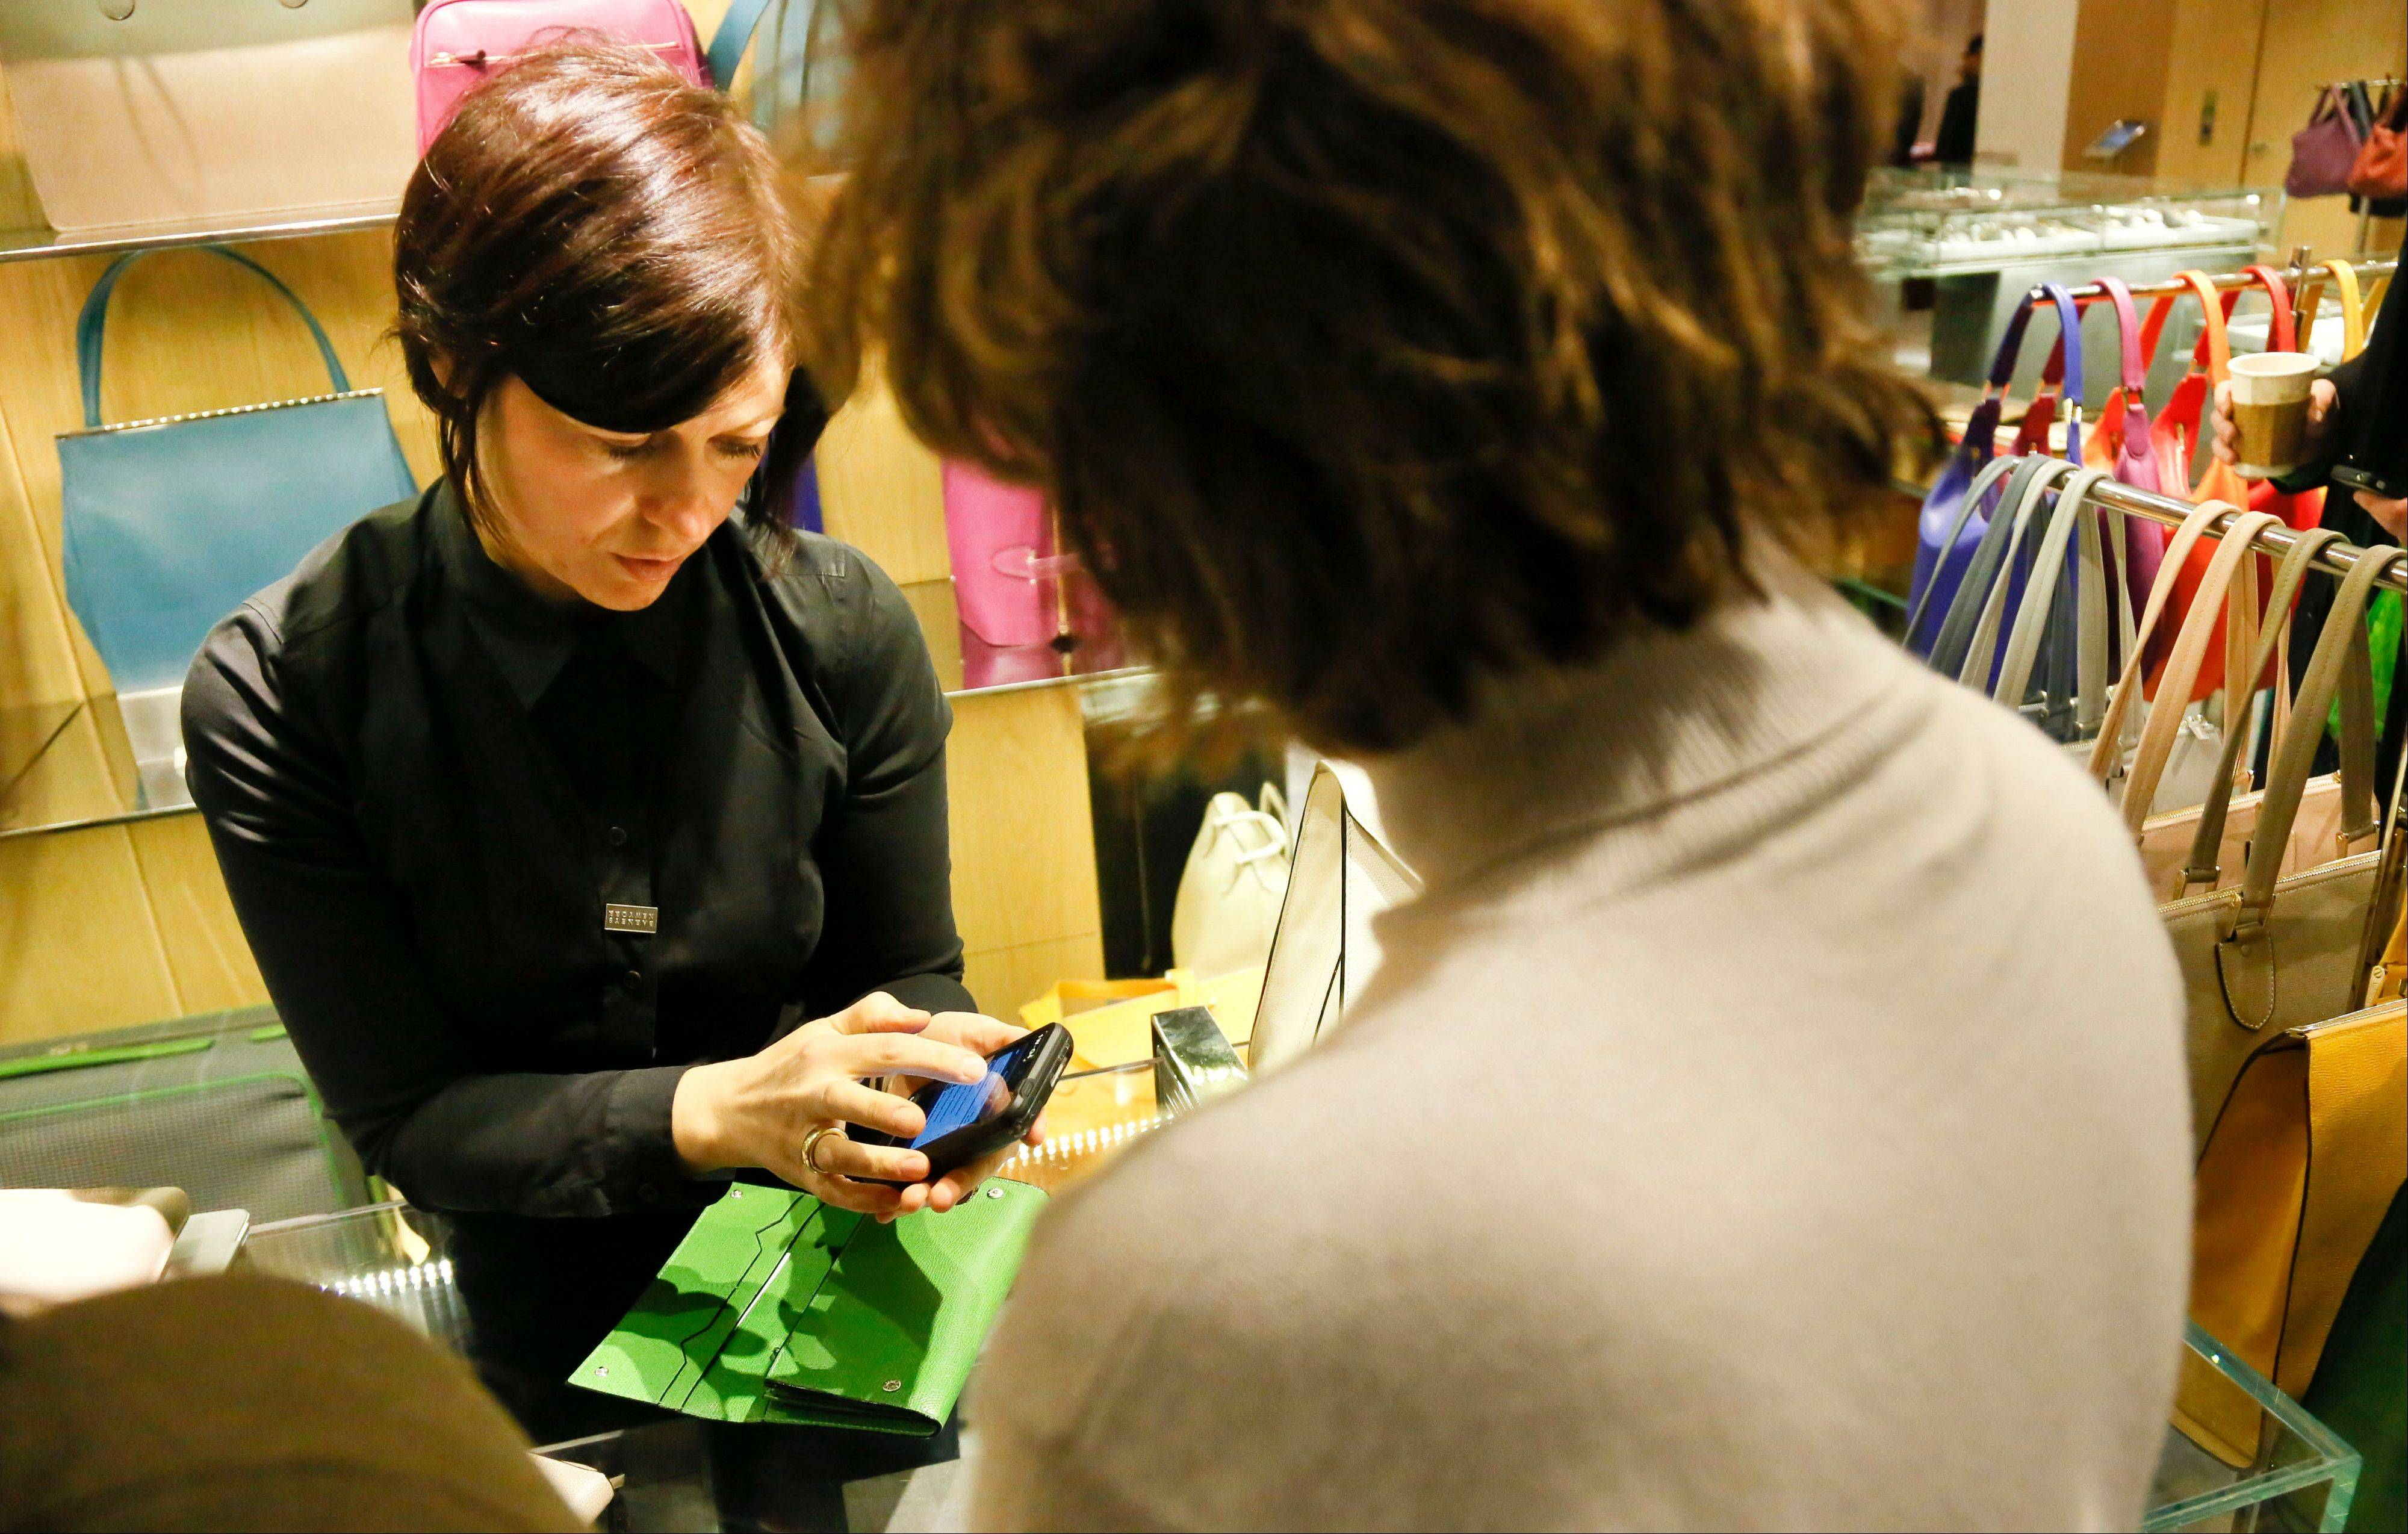 A sales staff member at Barneys New York uses an iPod Touch to help a customer make a purchase, in New York. Stores across the country are ditching the old-fashioned, clunky cash registers and instead having salespeople � and shoppers themselves � checkout on smartphones and tablet computers.